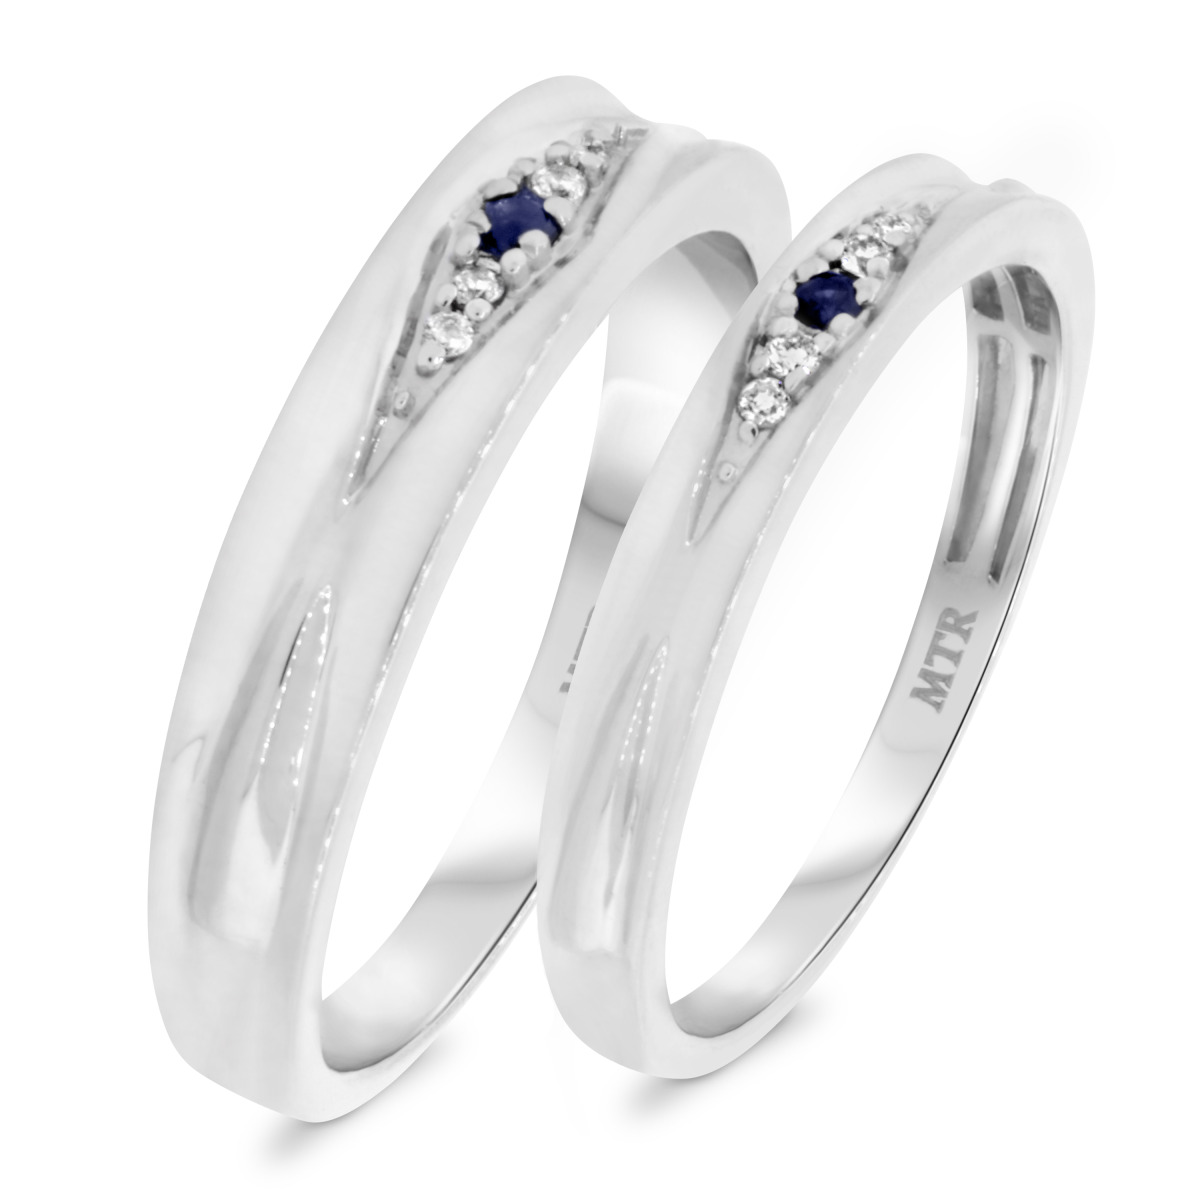 1/8 CT. T.W. Sapphire Matching Wedding Band Set 10K White Gold